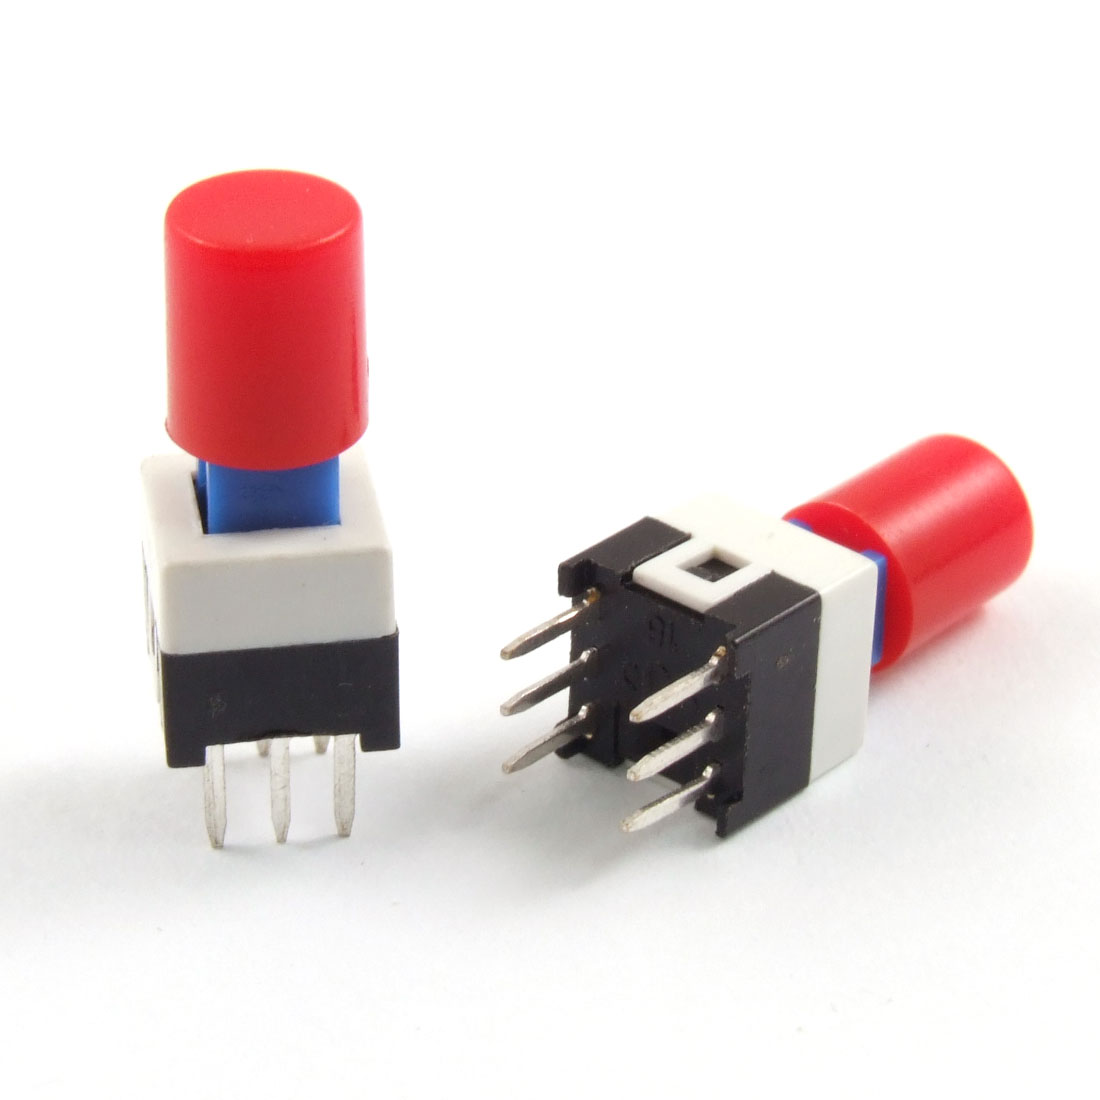 10 Pcs 6 Pin Red Cap Momentary Tactile Tact Push Button Switch 7 x 7mm x 12mm